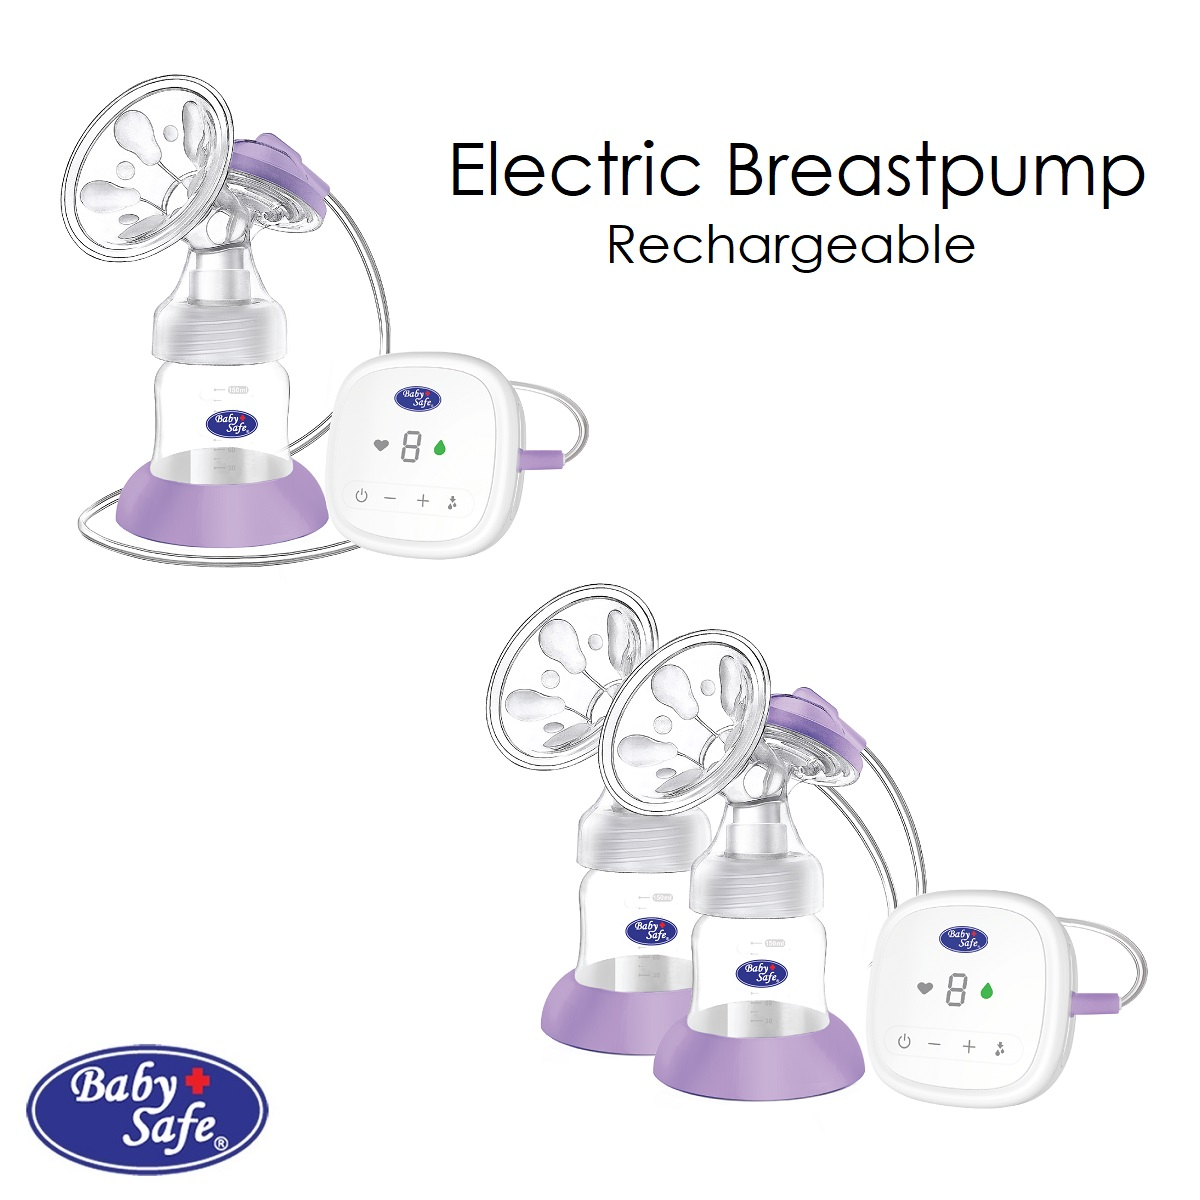 Baby Safe Electric Breastpump Rechargeable (1)